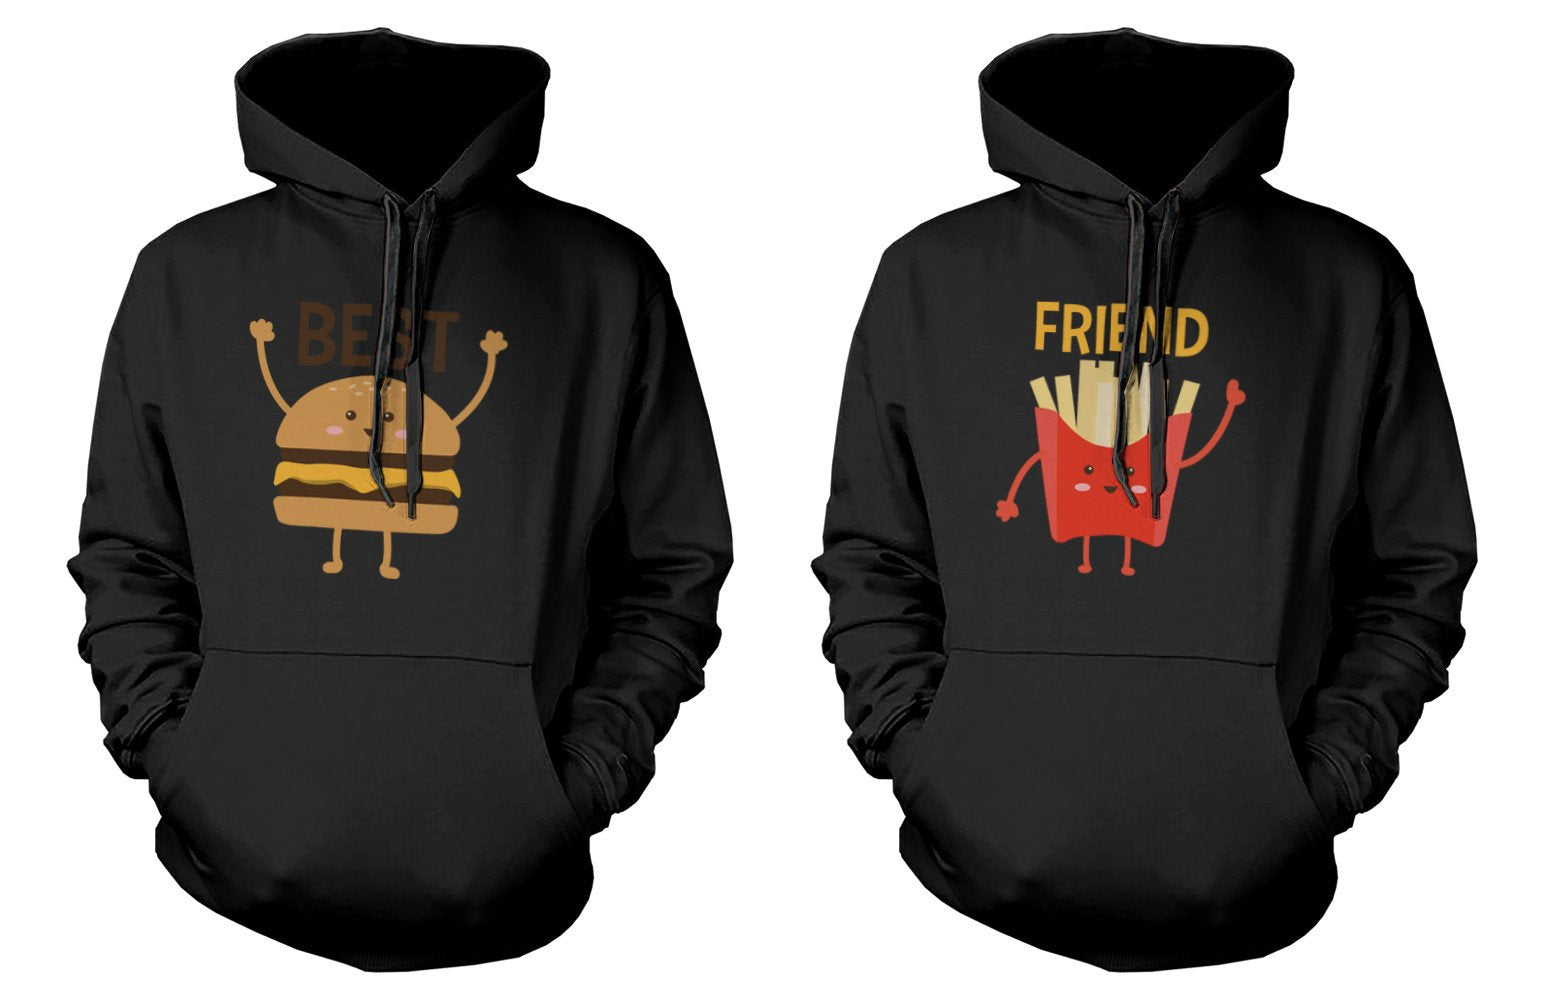 Burger and Fries BFF Hoodies Best Friend Matching Hooded Sweatshirts